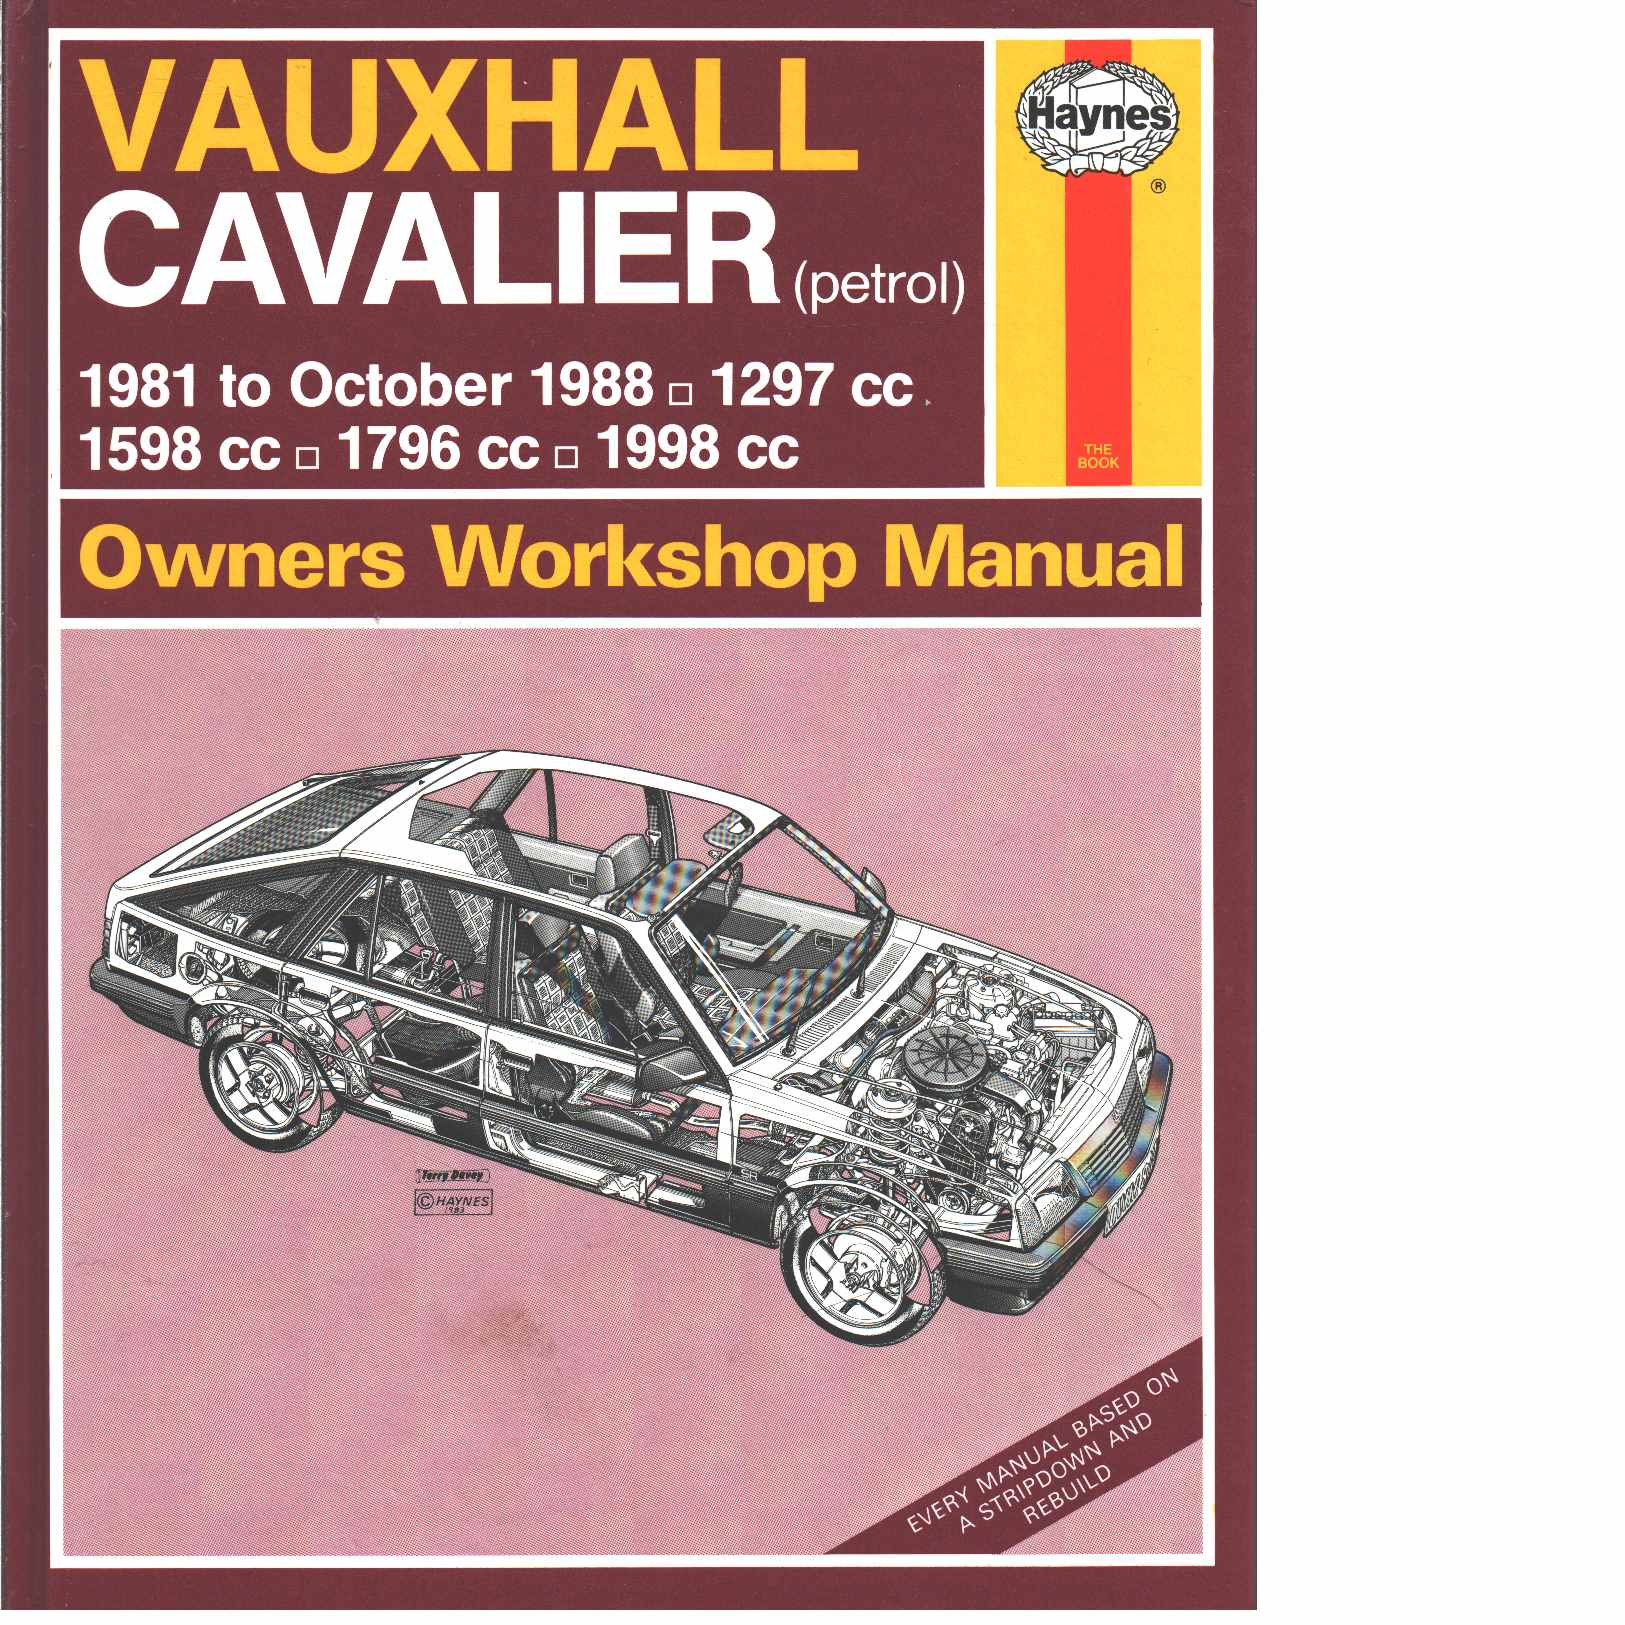 Vauxhall Cavalier 1981-88 Owner's Workshop Manual -  Coomber, Ian